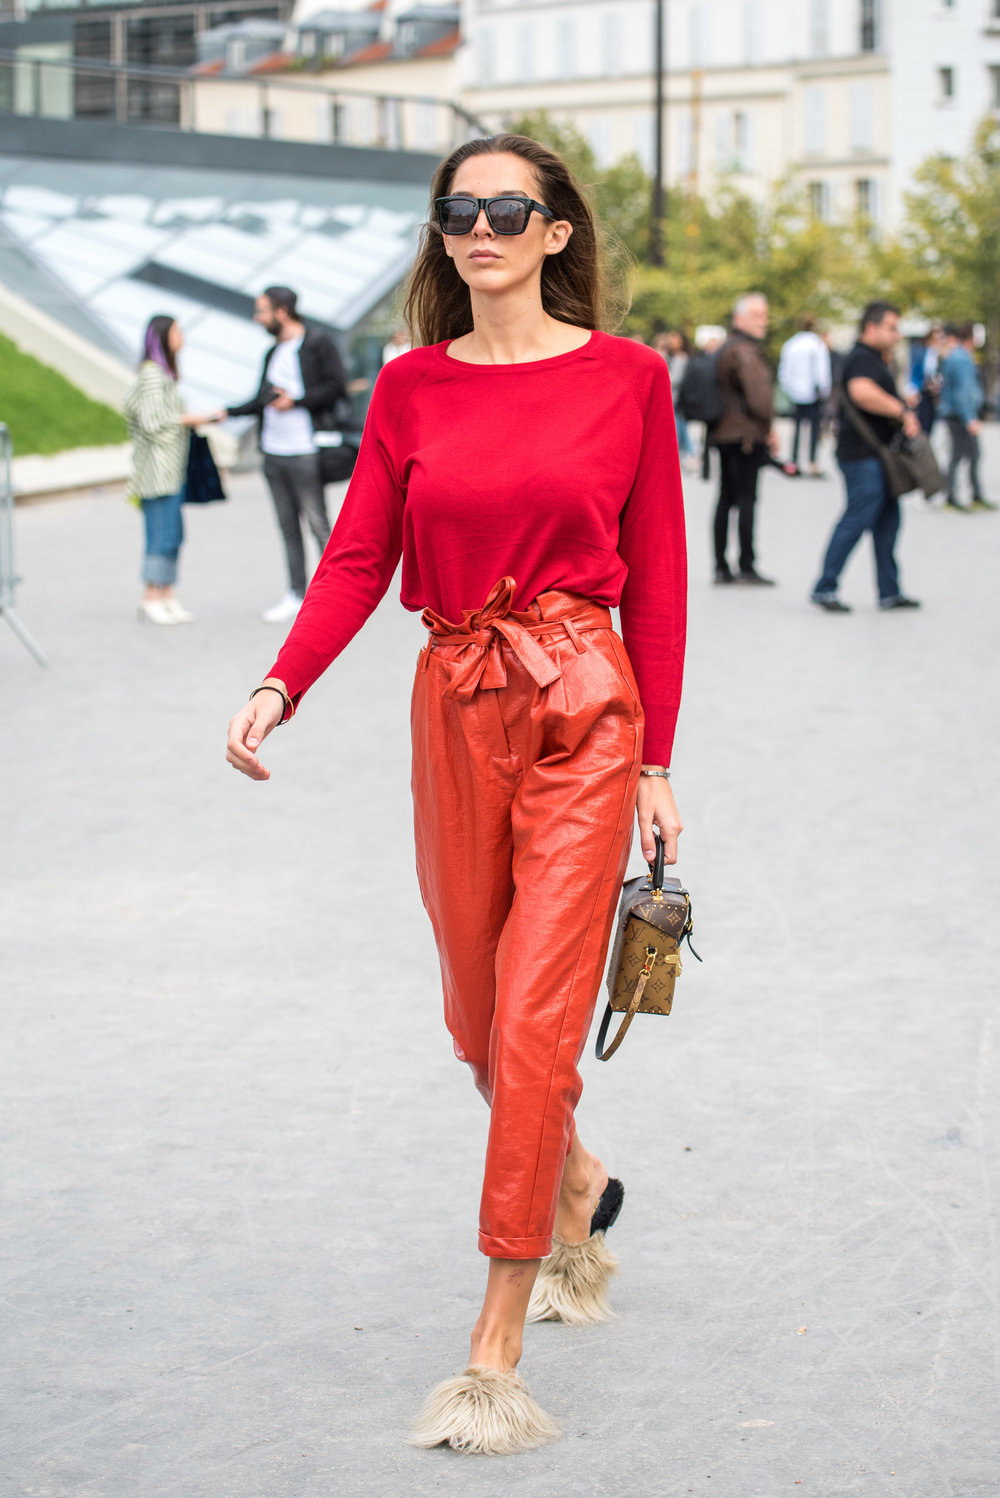 2016-09-29 - PARIS FASHION WEEK - day 3 - Miyaki Street style - 056 of 134 - _DSC8742 - 3 stars.jpg